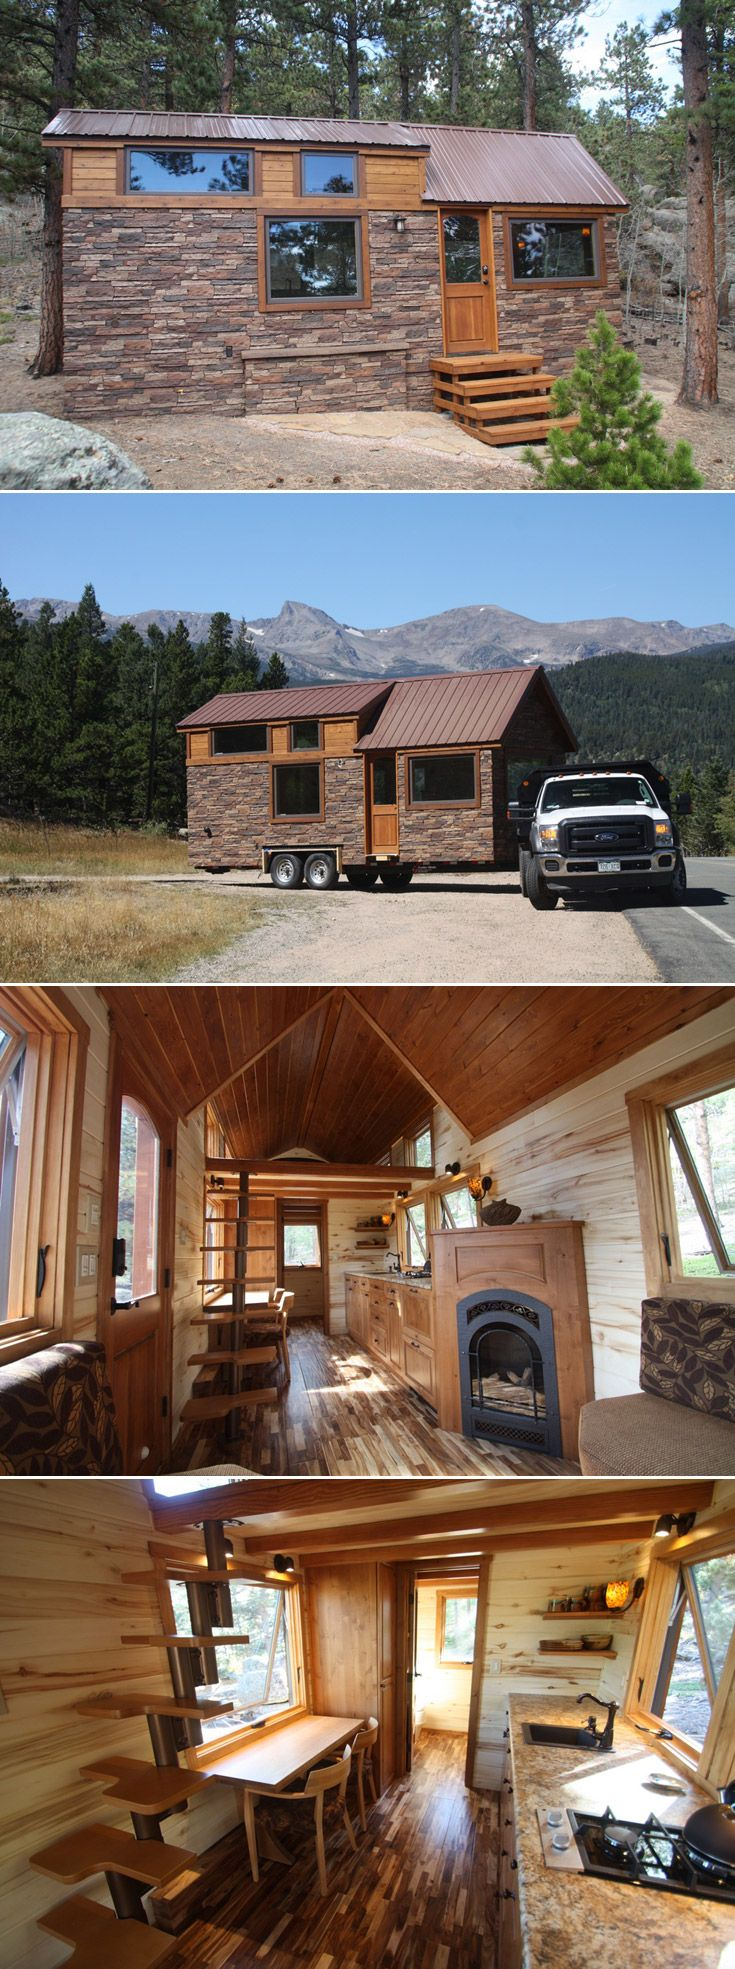 a 204 sqft tiny house on wheels with lightweight stone veneer fireplace - Small House On Wheels